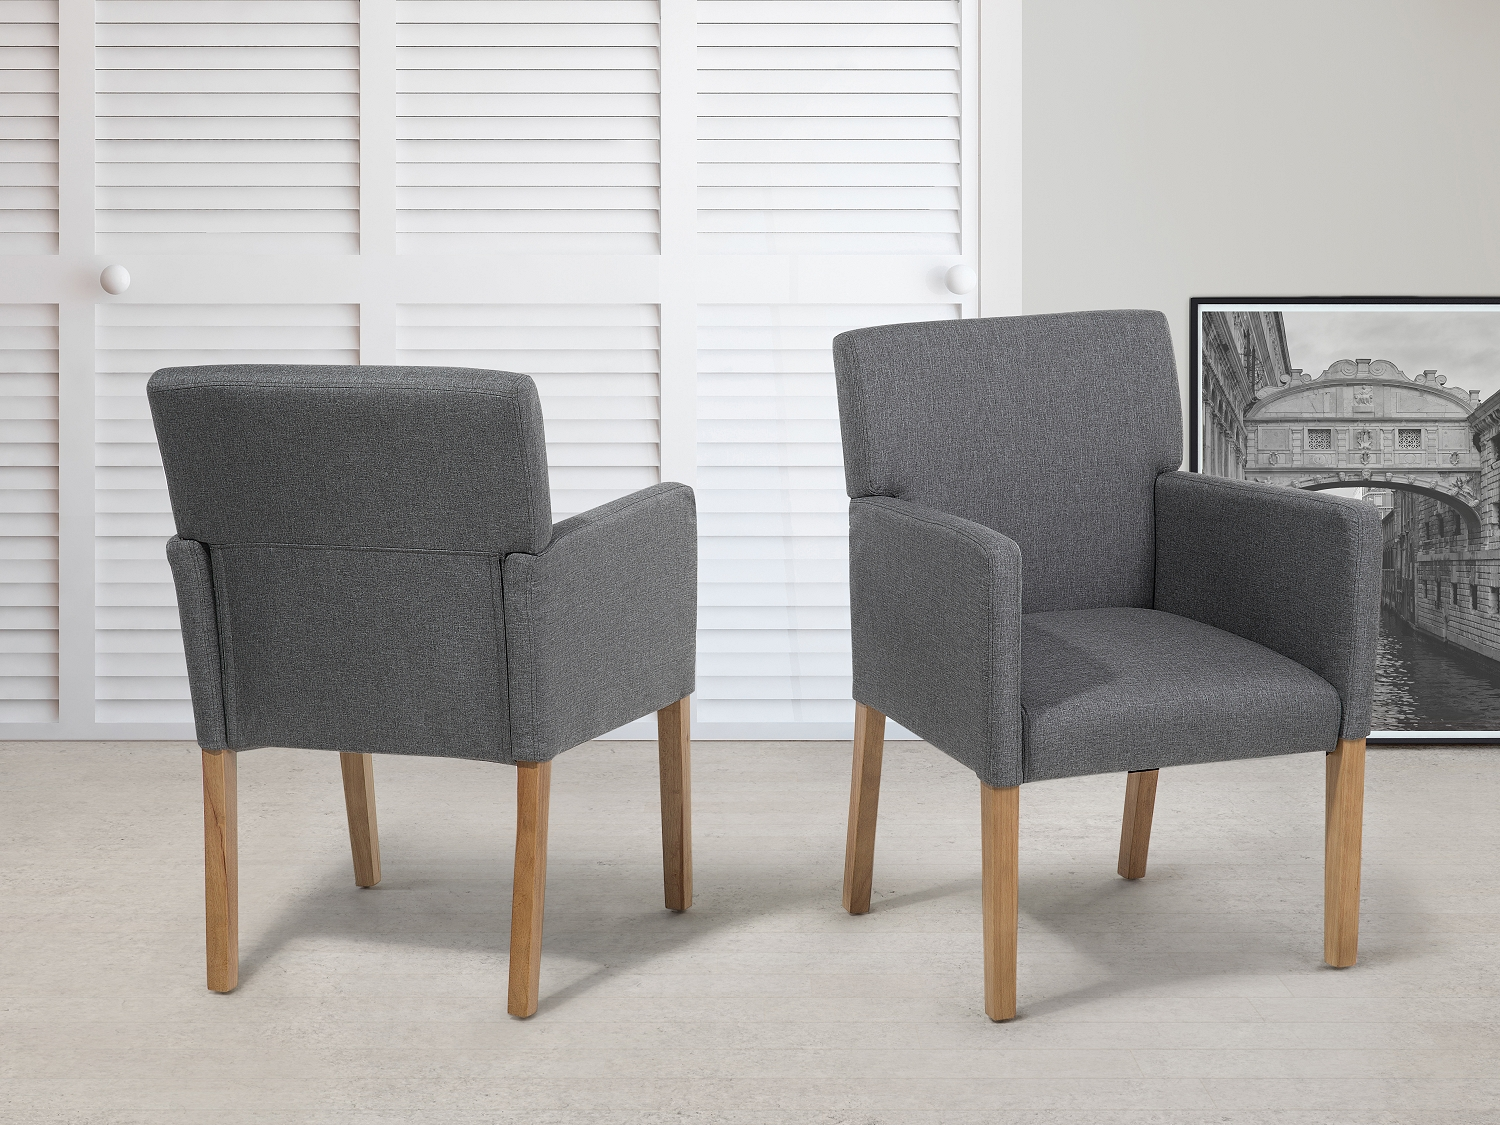 luxury pair of walnut dining chairs with grey fabric upholstered seat